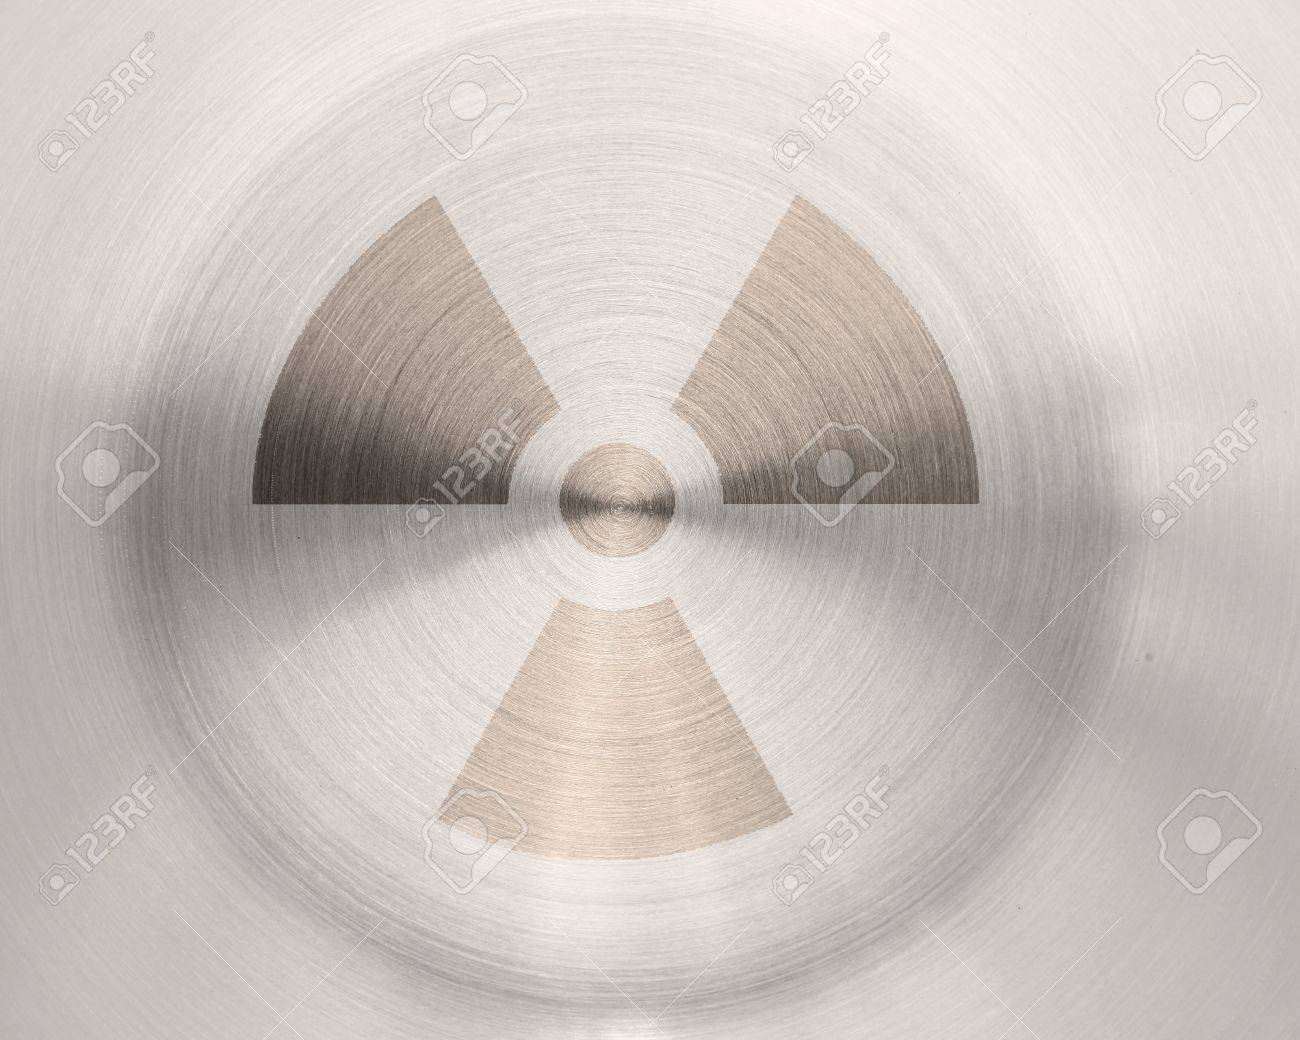 grunge nuclear sign on metal texture background Stock Photo - 9451512